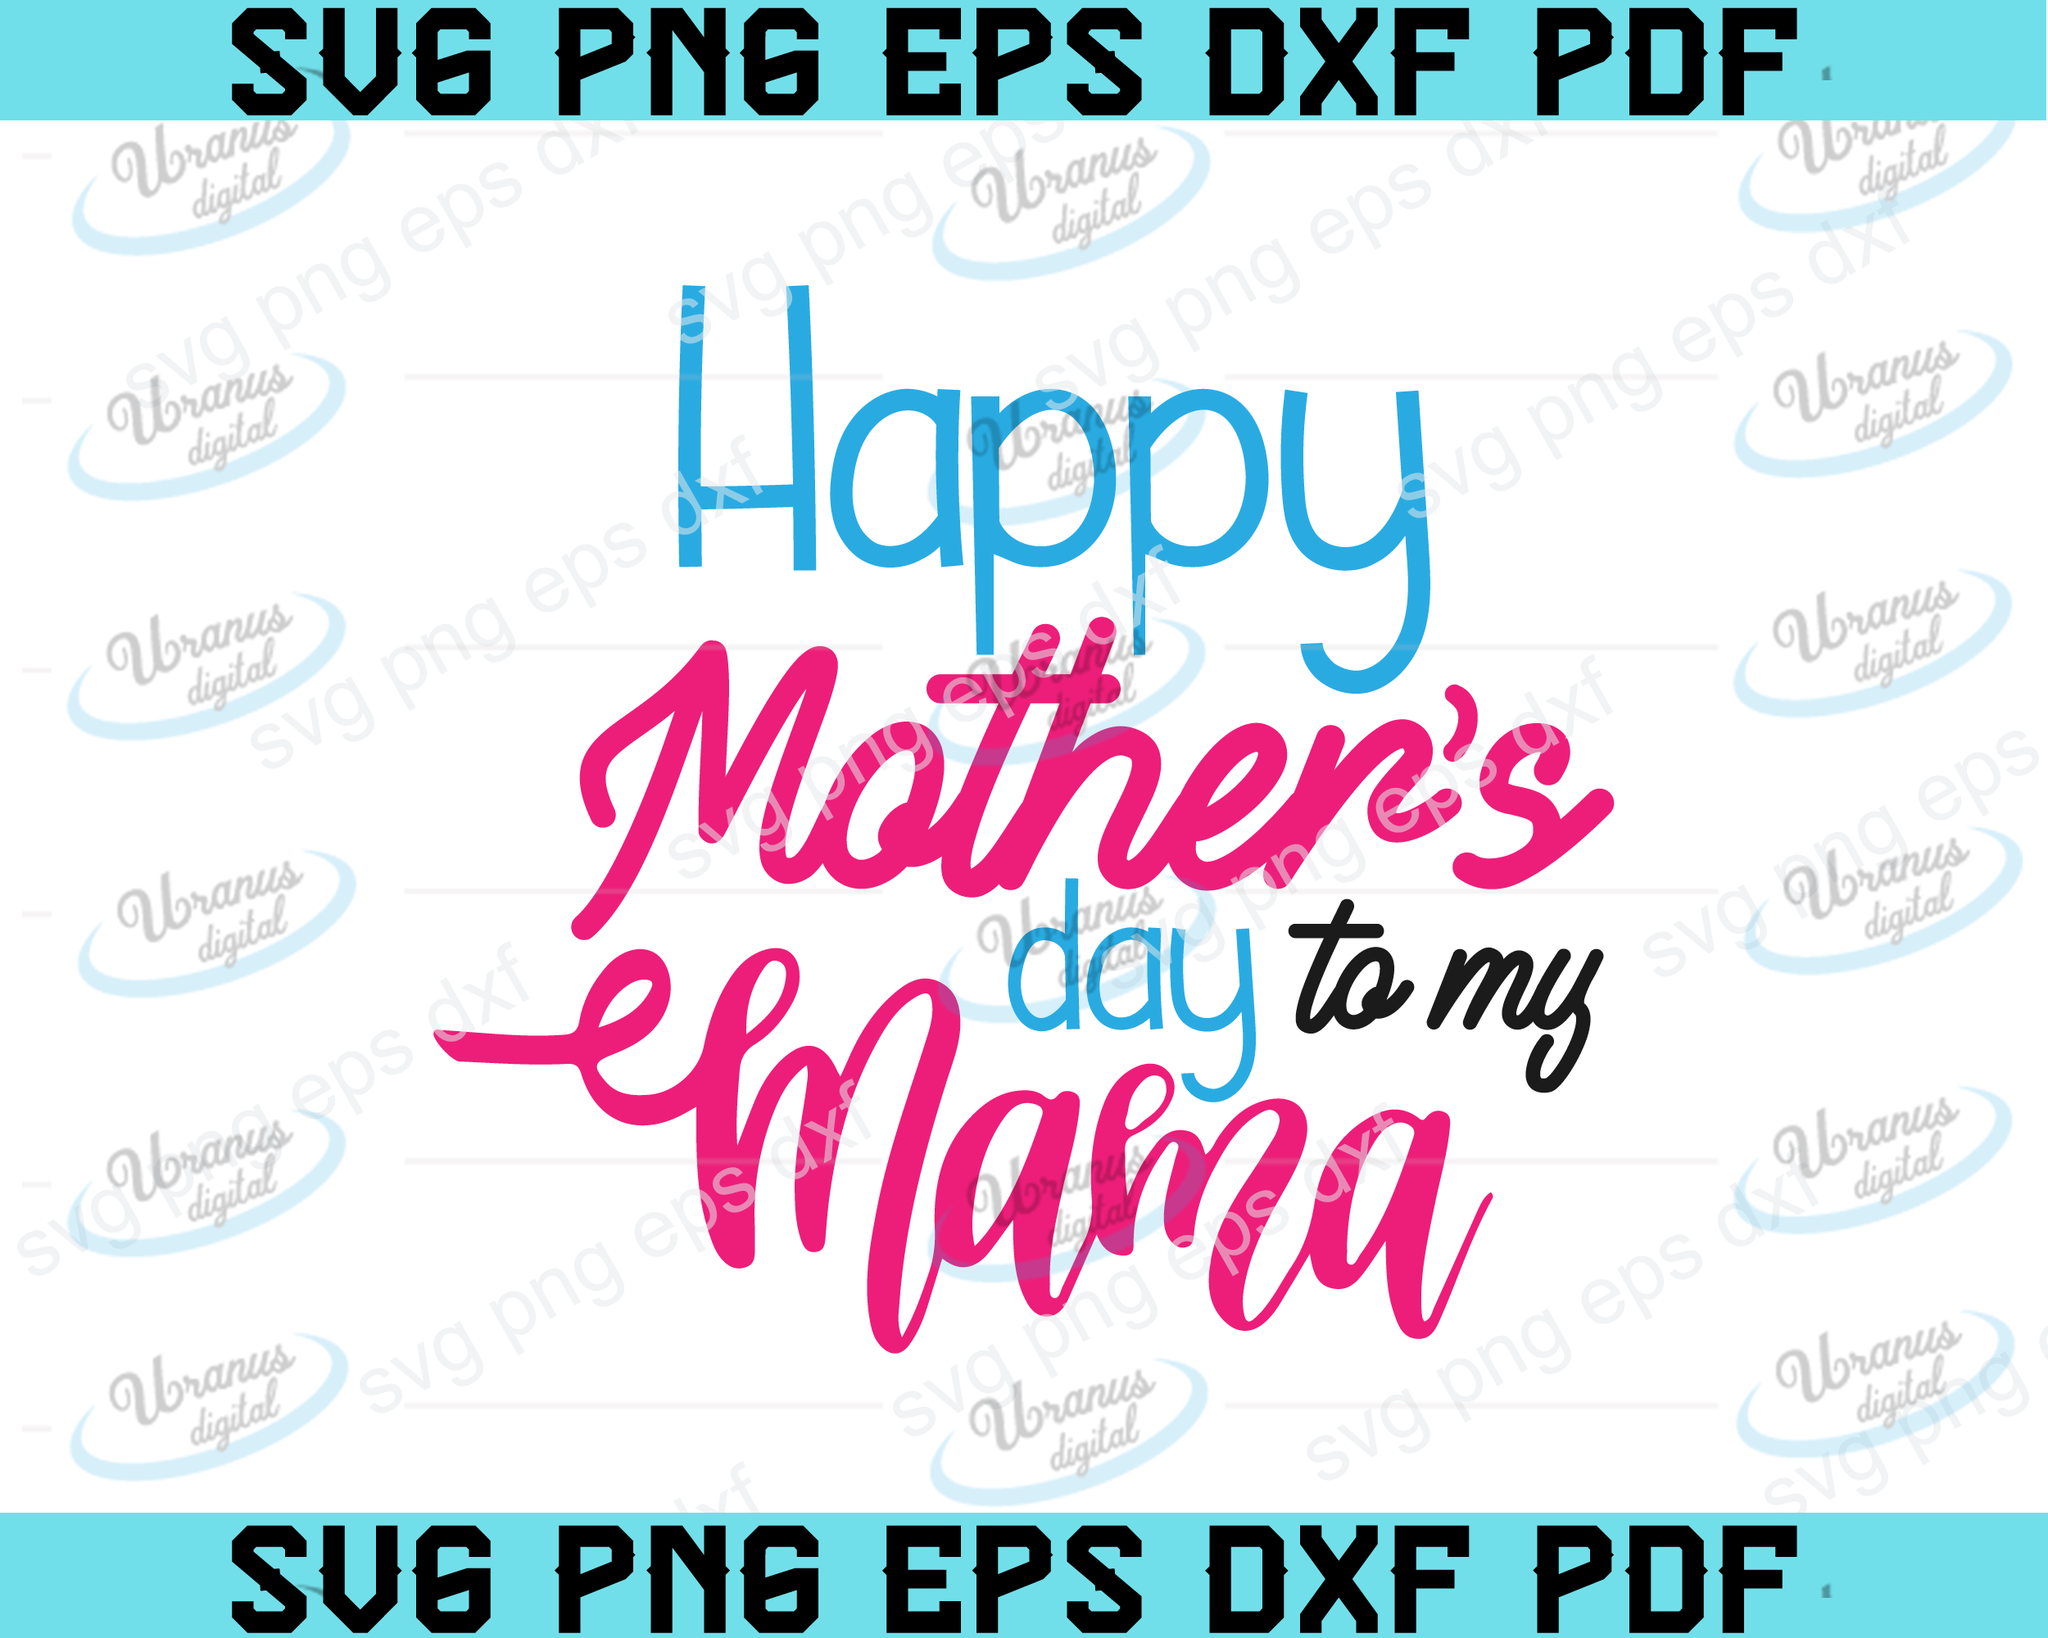 HAPPY MOTHERS DAY TO MY MAMA svg, Happy Mother's Day Svg, Mother's Day Svg ,Mom Svg ,Mother Svg ,Svg Designs ,Svg Cut Files, Cricut Cut Files, Silhouette ,Cut Files